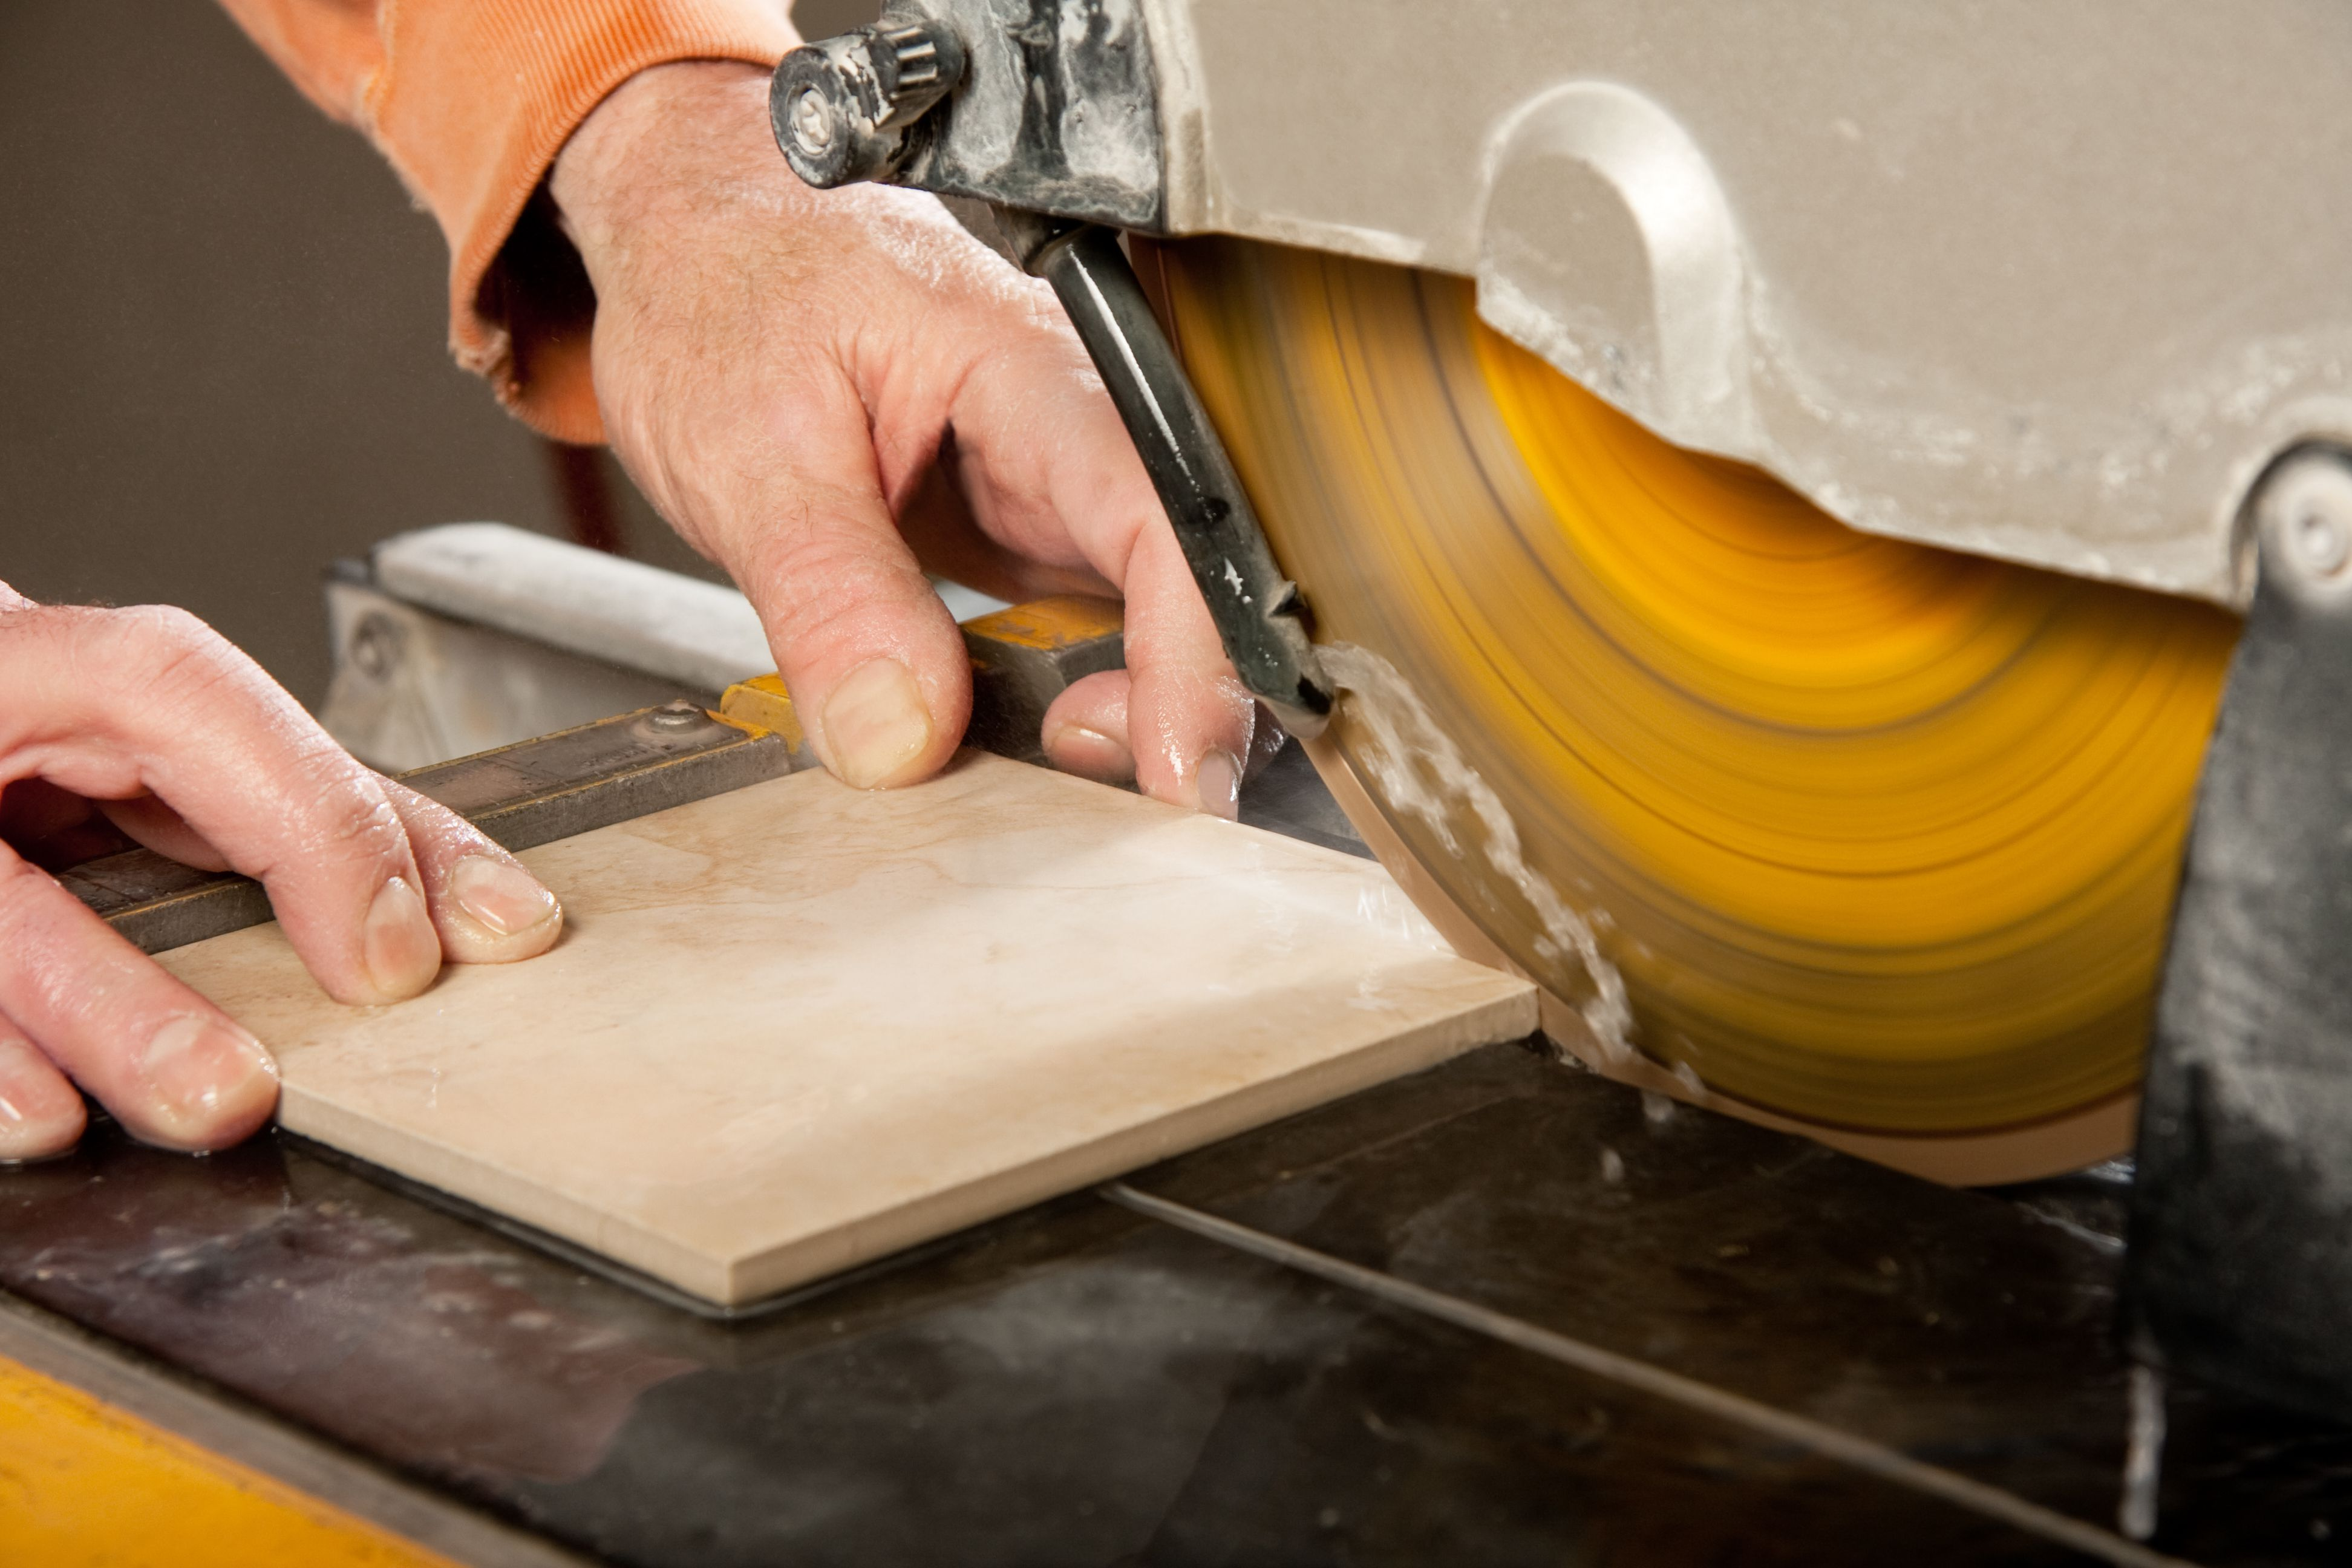 Essential tiling tools you should have 5 best tools for cutting ceramic tile tile flooring dailygadgetfo Image collections